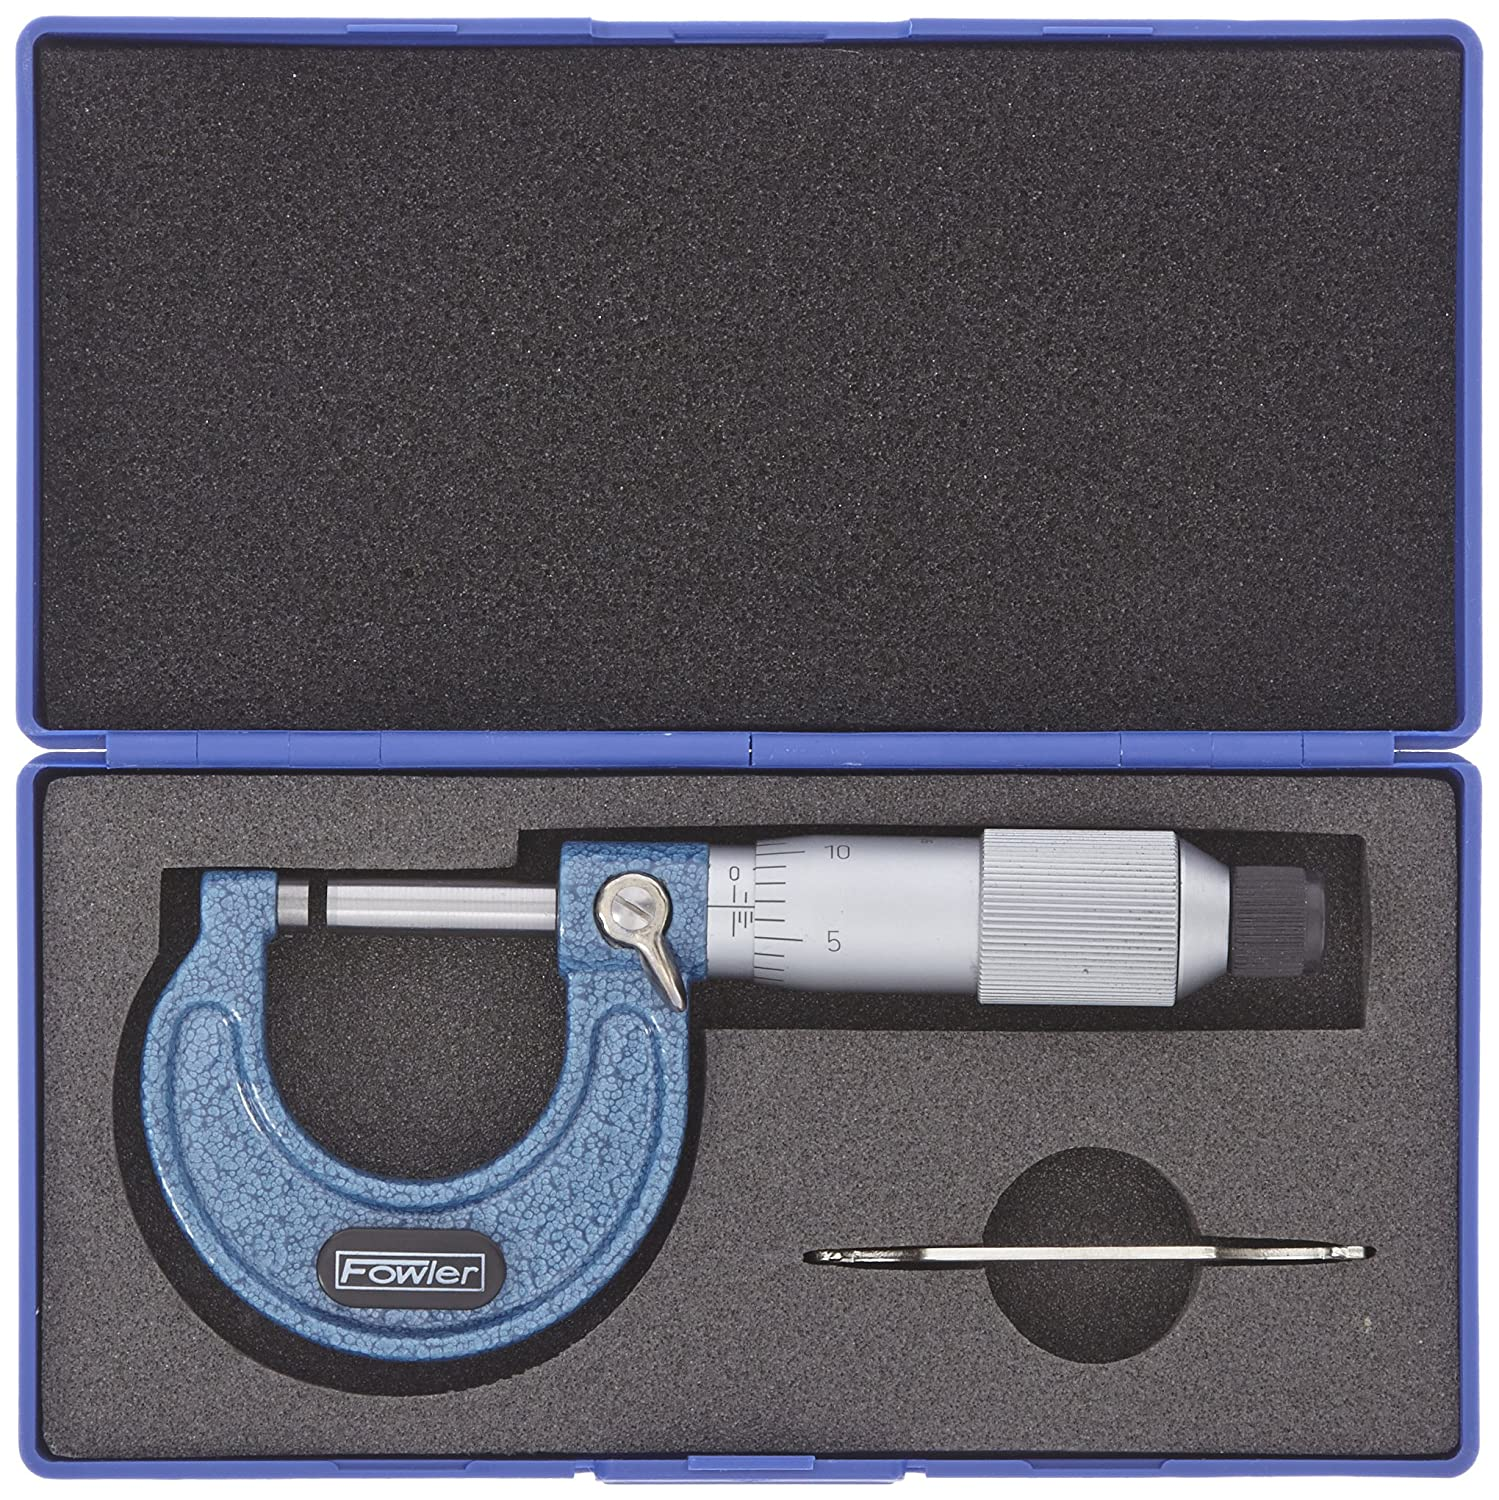 0.001 Graduation Fowler 52-253-001-1 52-253 Series Outside Inch Micrometer 0-1 Measuring Range 0.00016 Accuracy Friction Stop Thimble